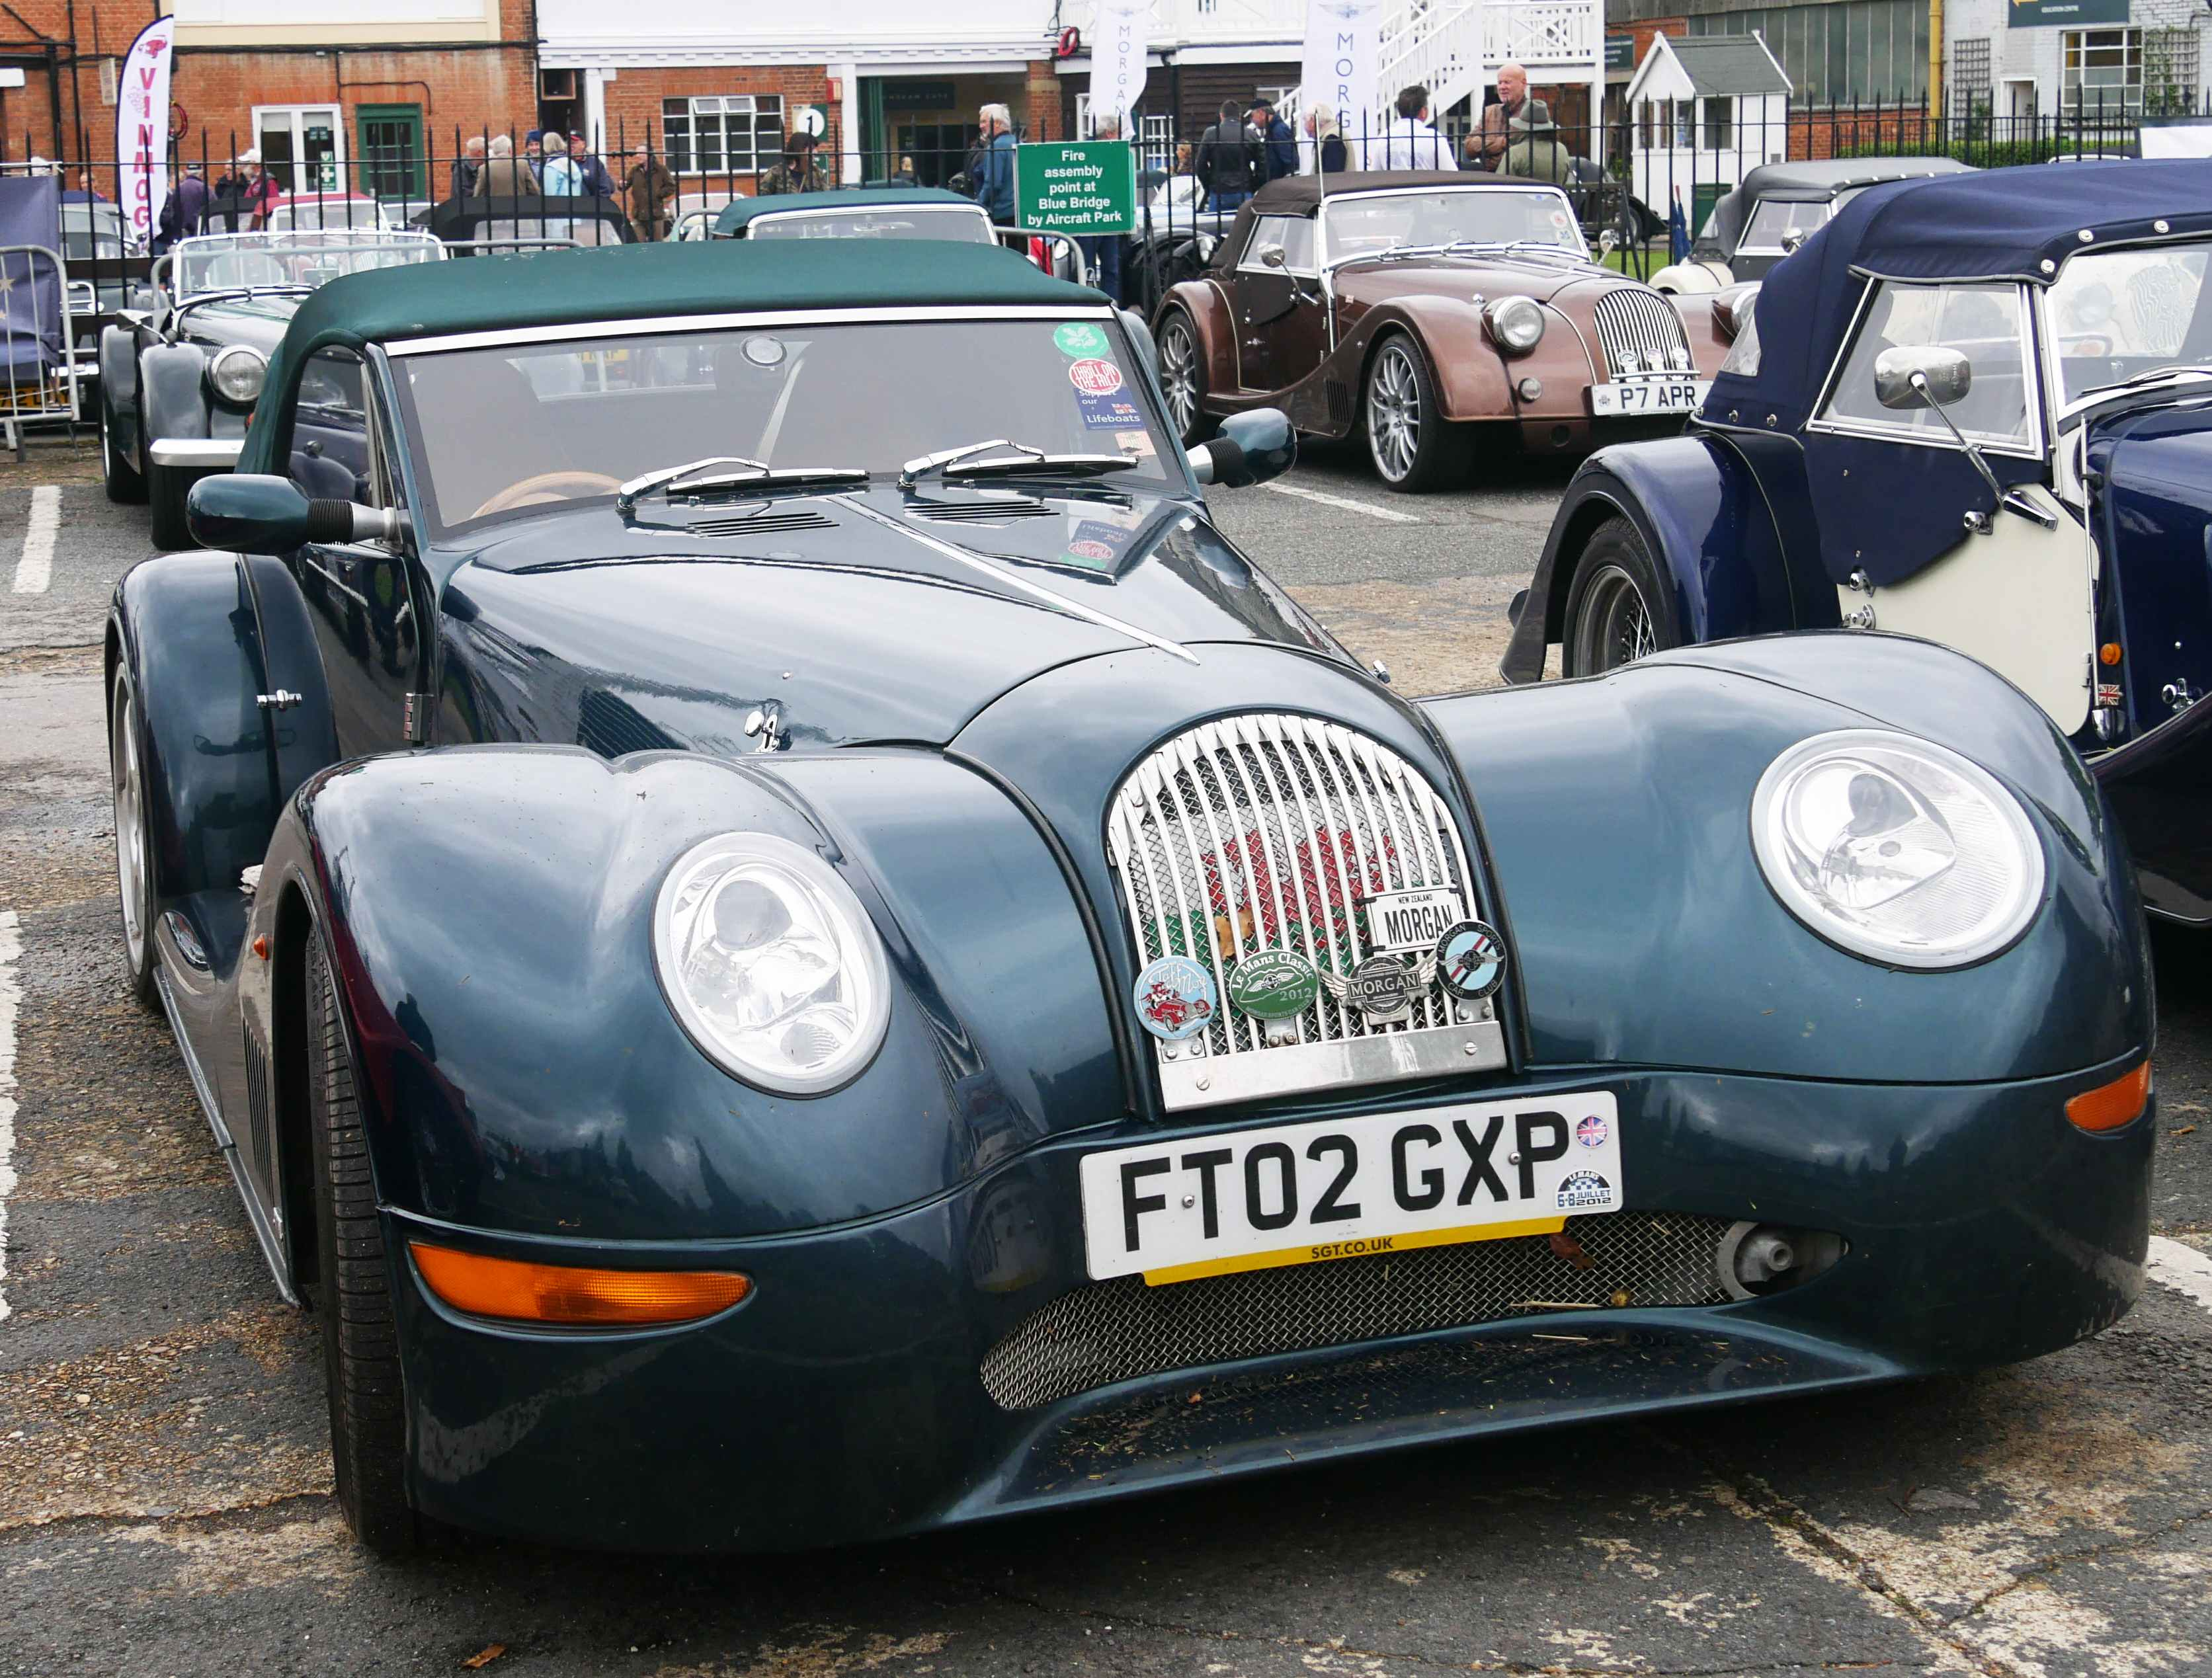 The front end of the more or less streamlined Aero 8.